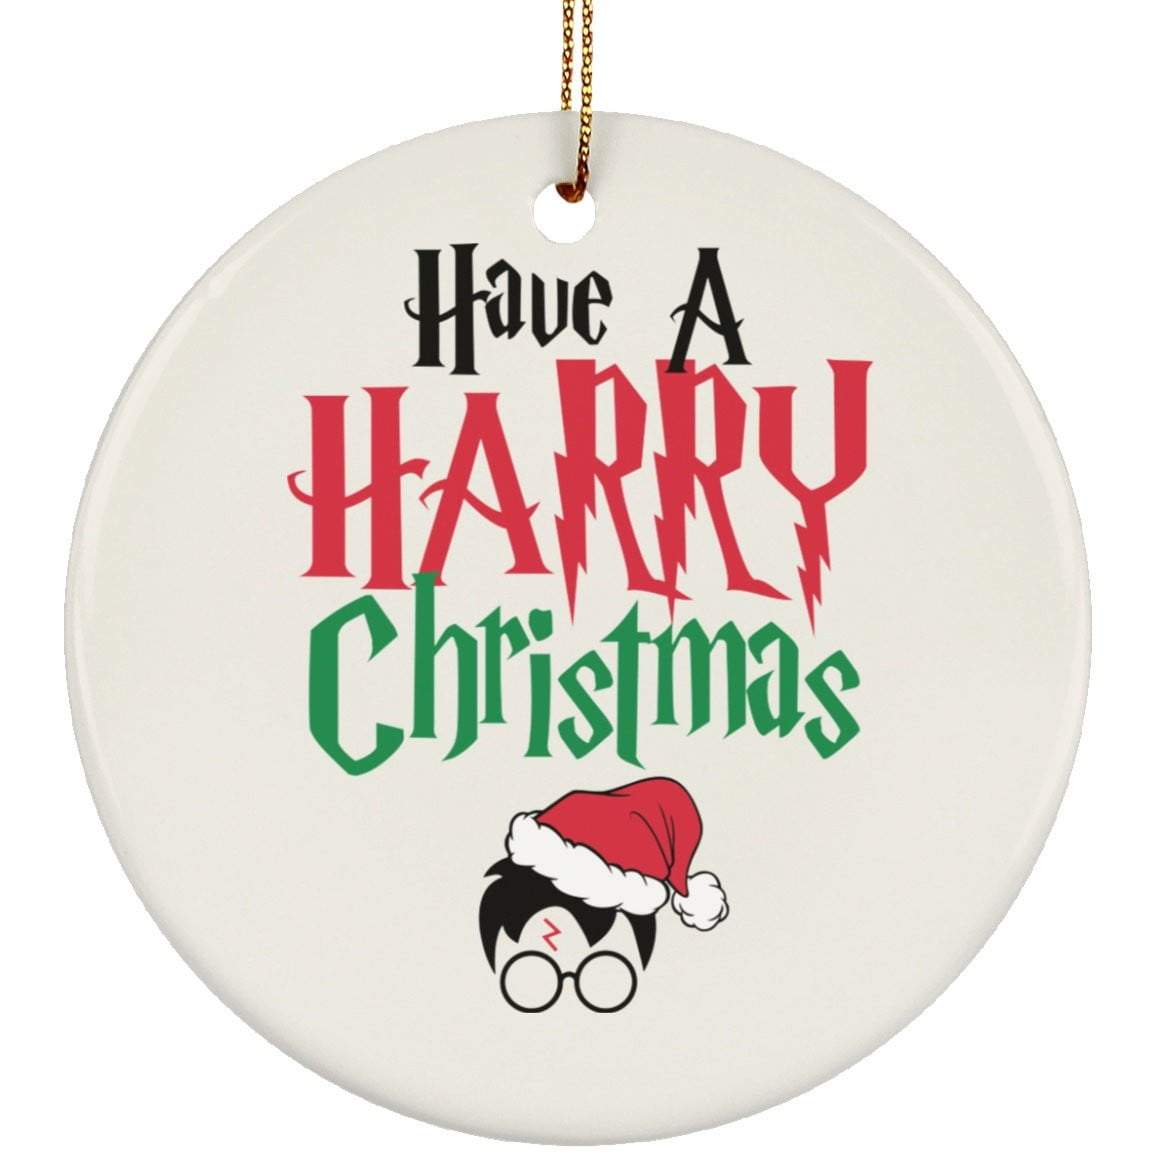 HARRY POTTER CHRISTMAS Christmas Ceramic Circle Ornament